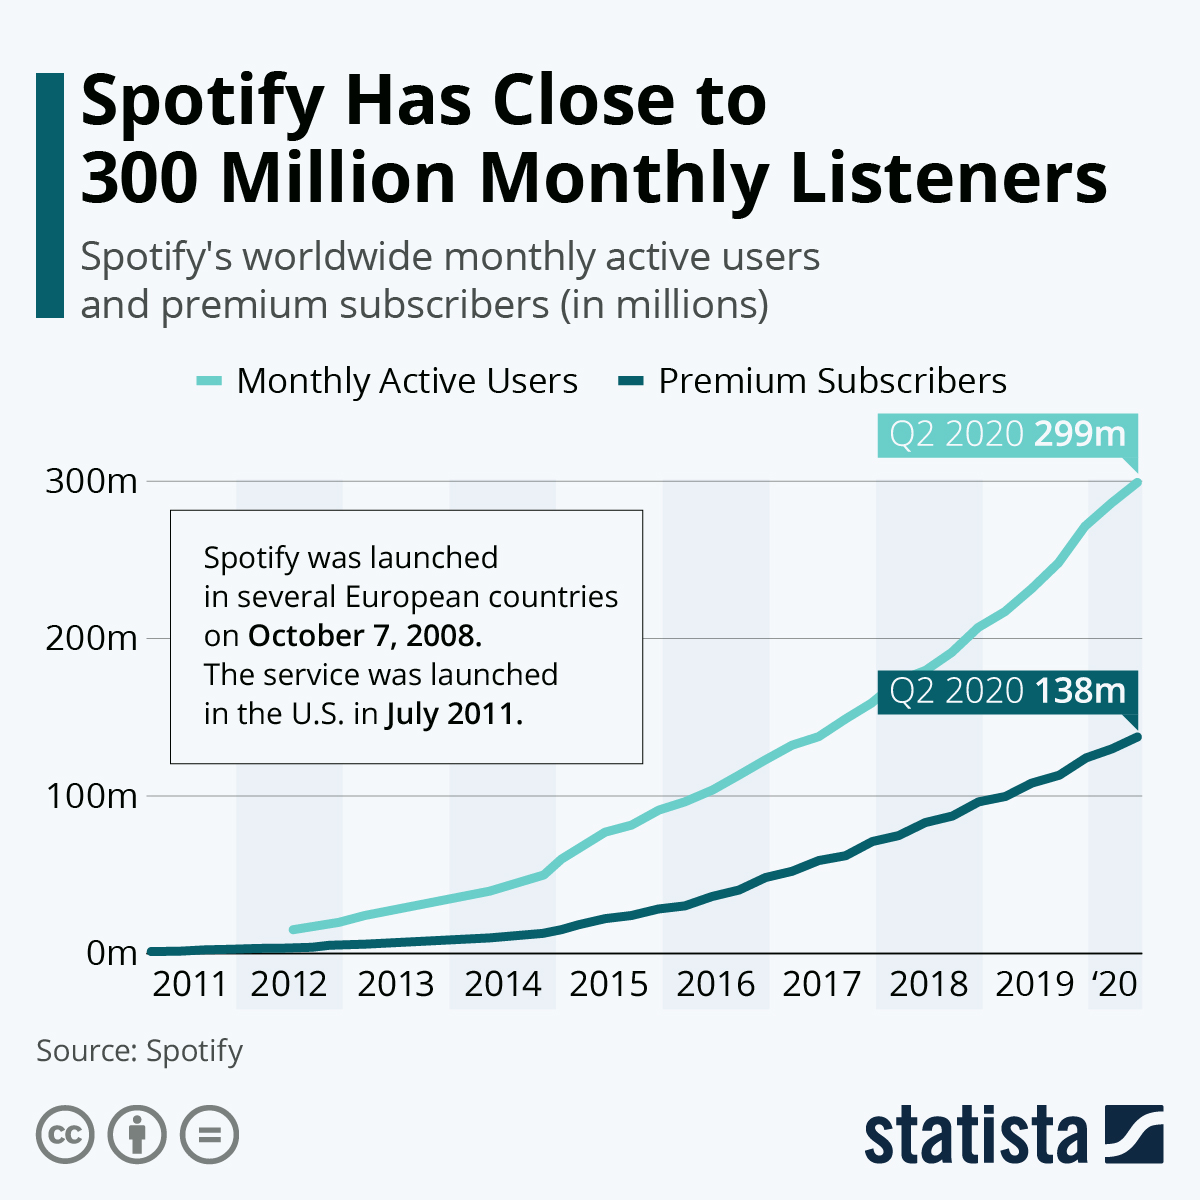 Spotify Has Close to 300 Million Monthly Listeners#Infographic